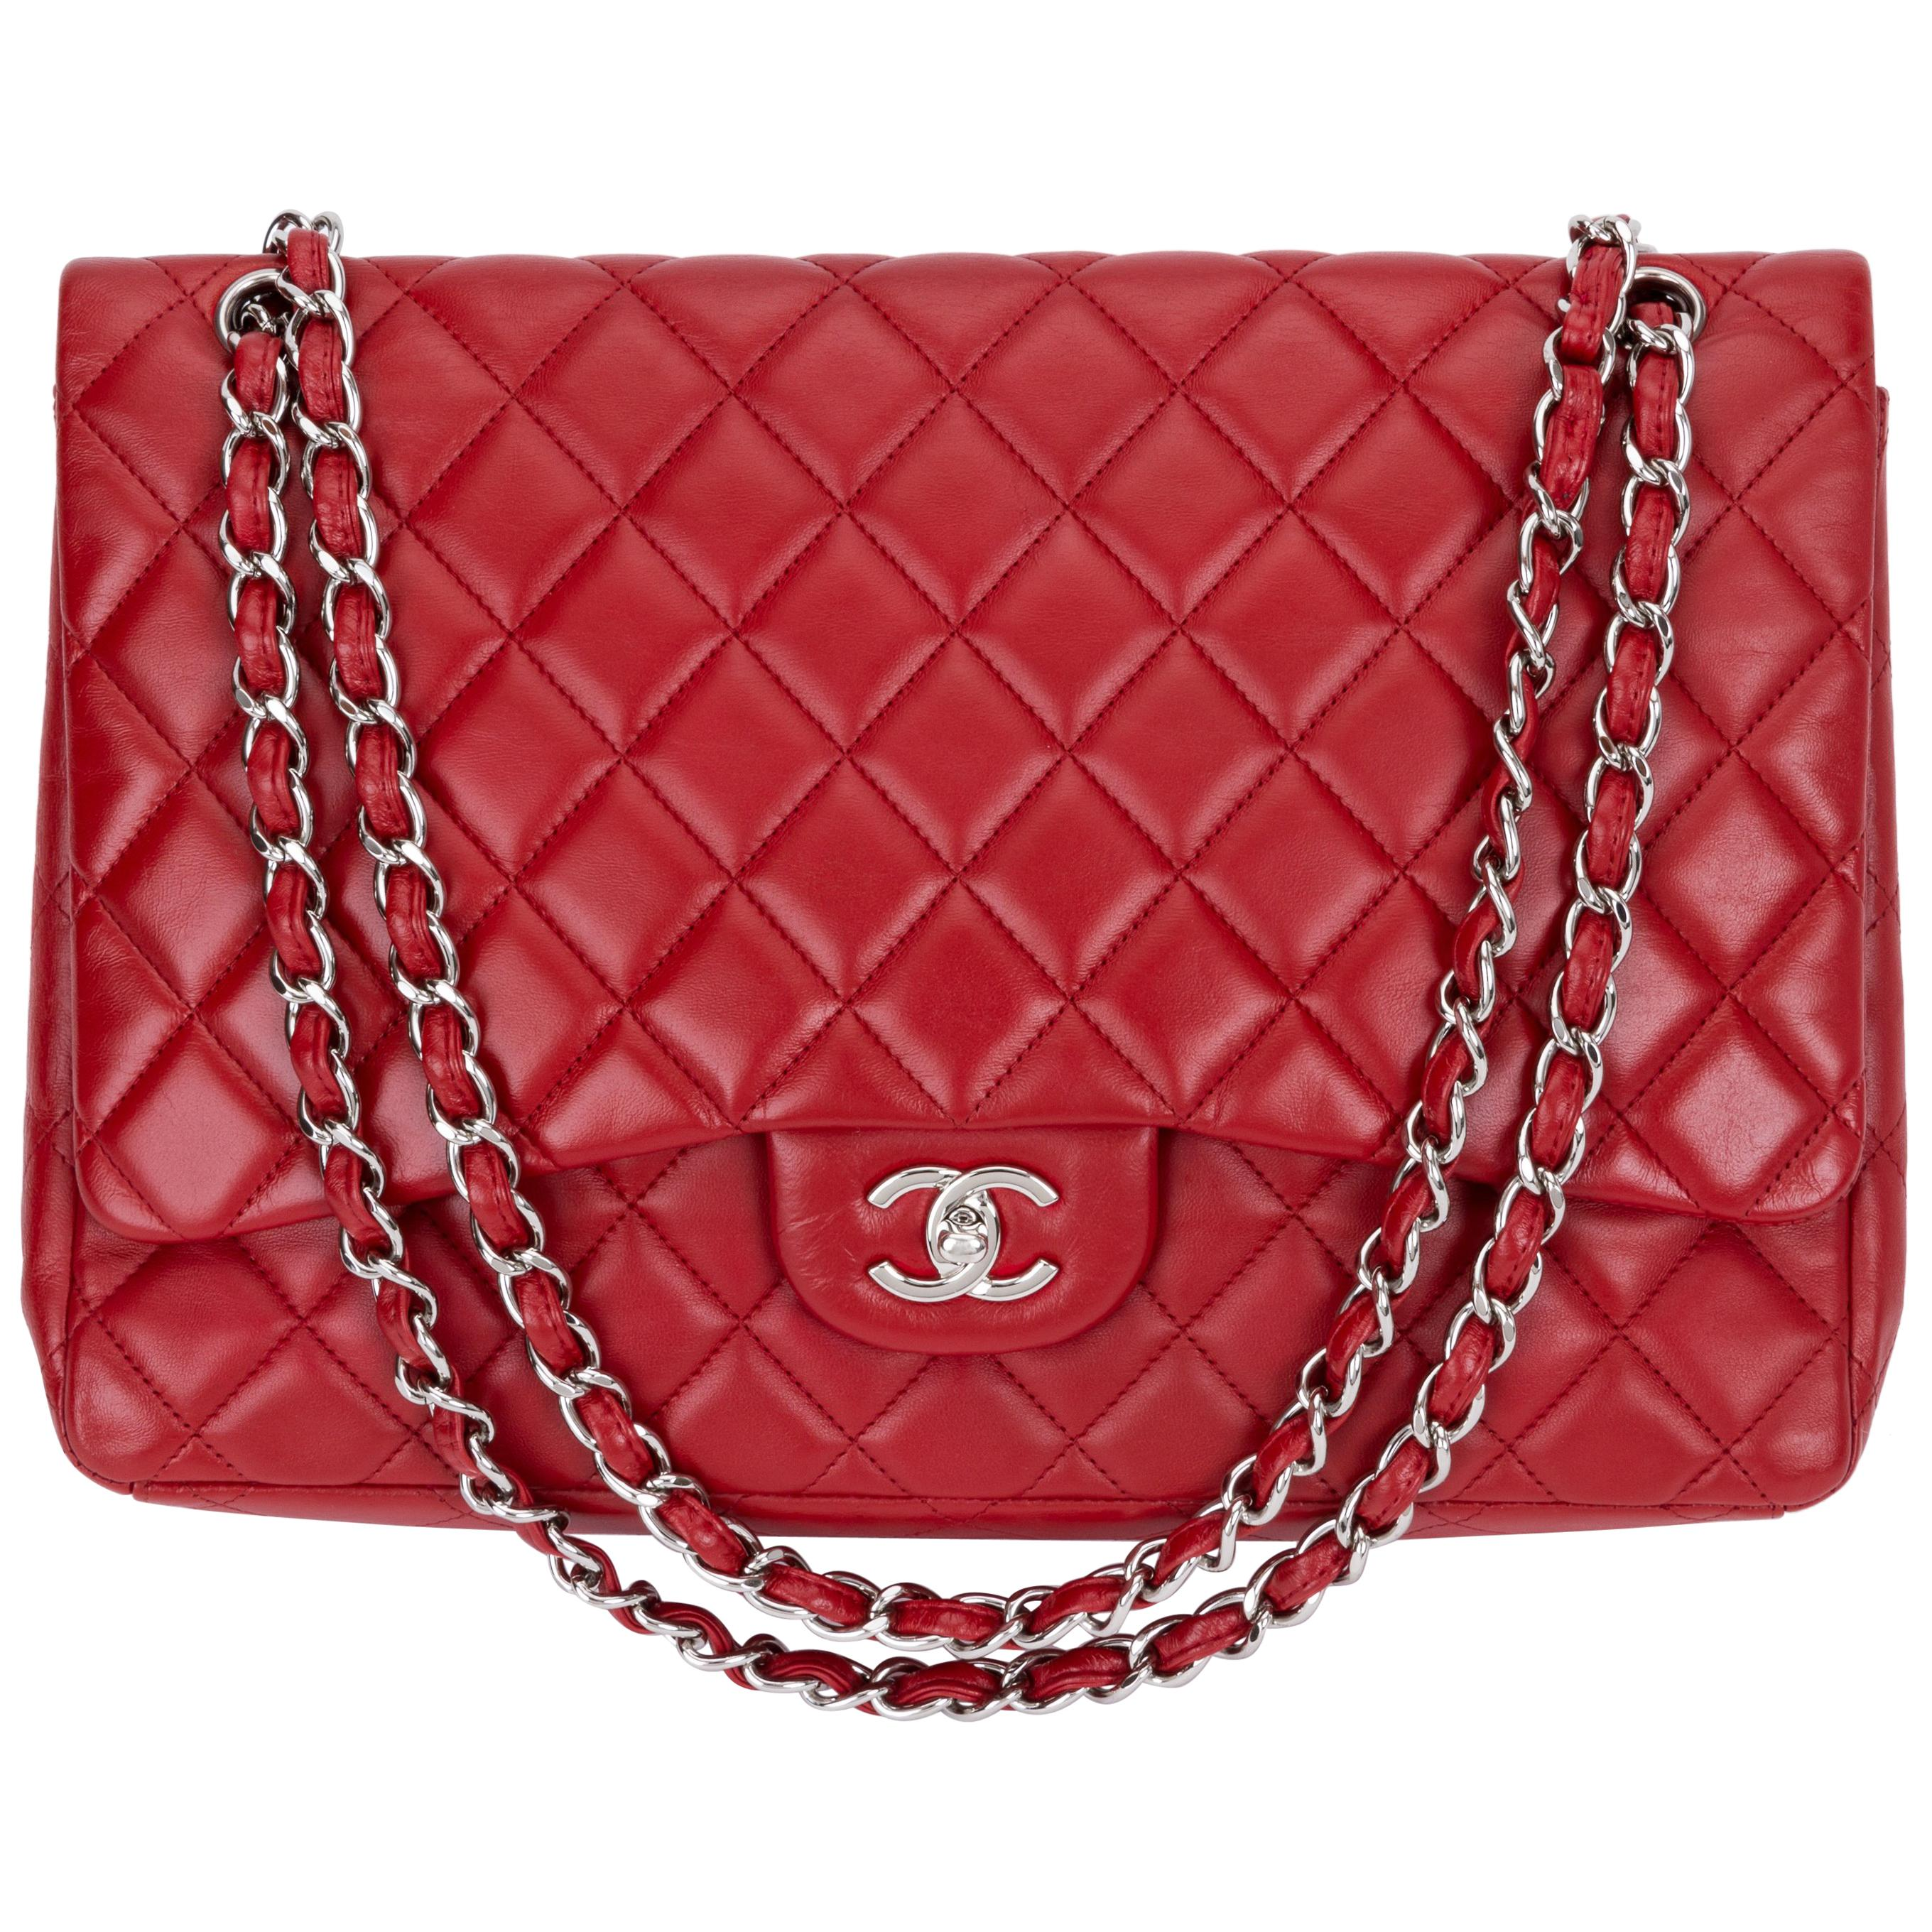 9e377f5534f3 Chanel Red Maxi Lambskin Single Flap Bag For Sale at 1stdibs